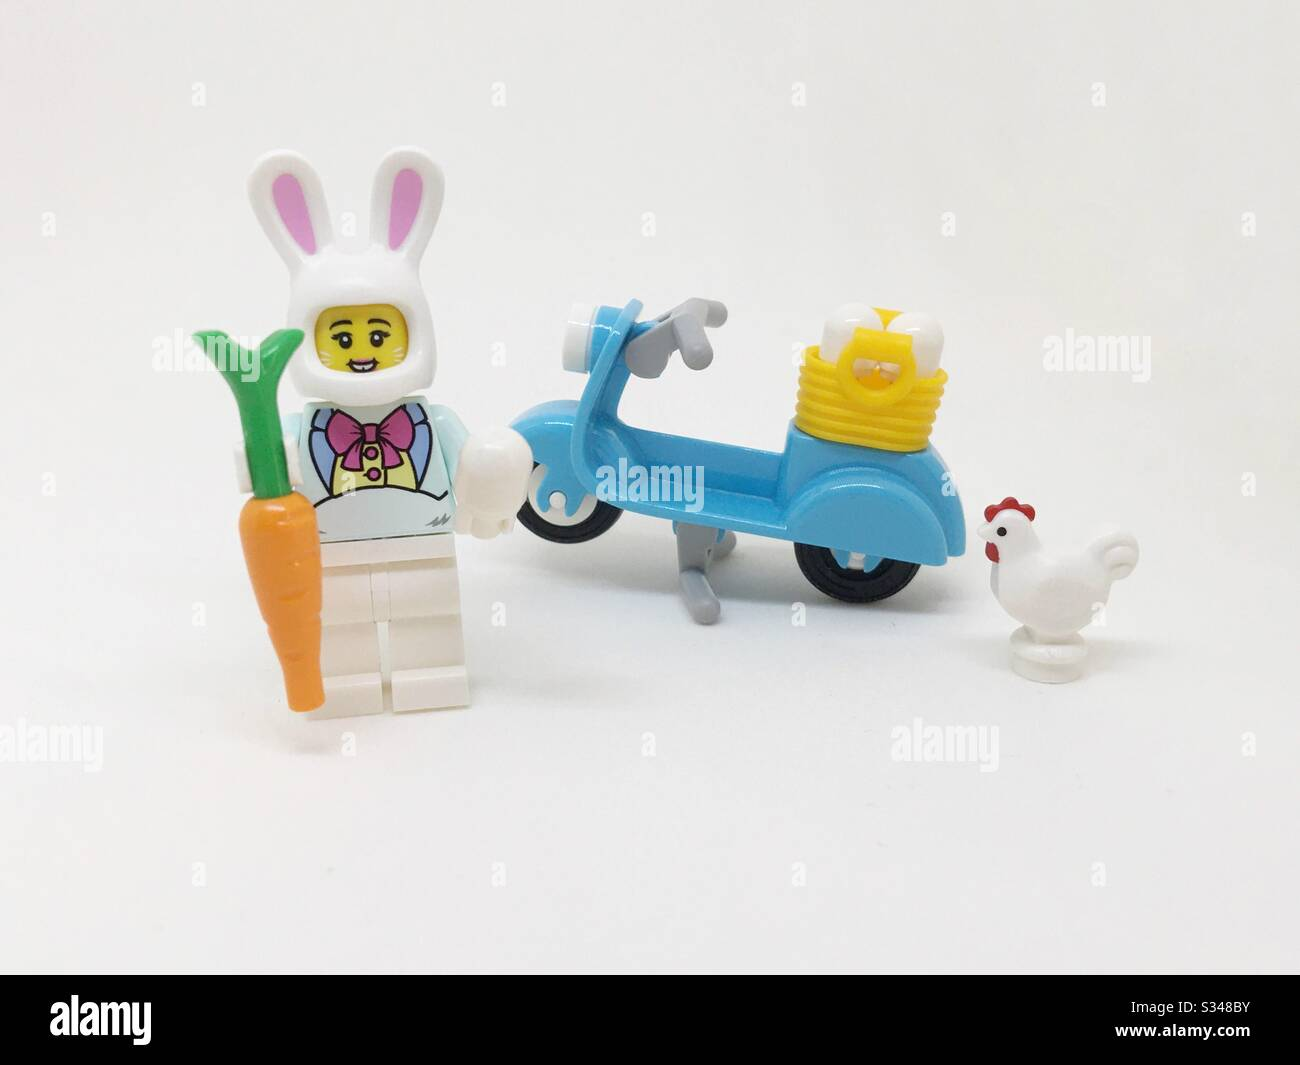 lego-easter-bunny-holding-a-carrot-and-e